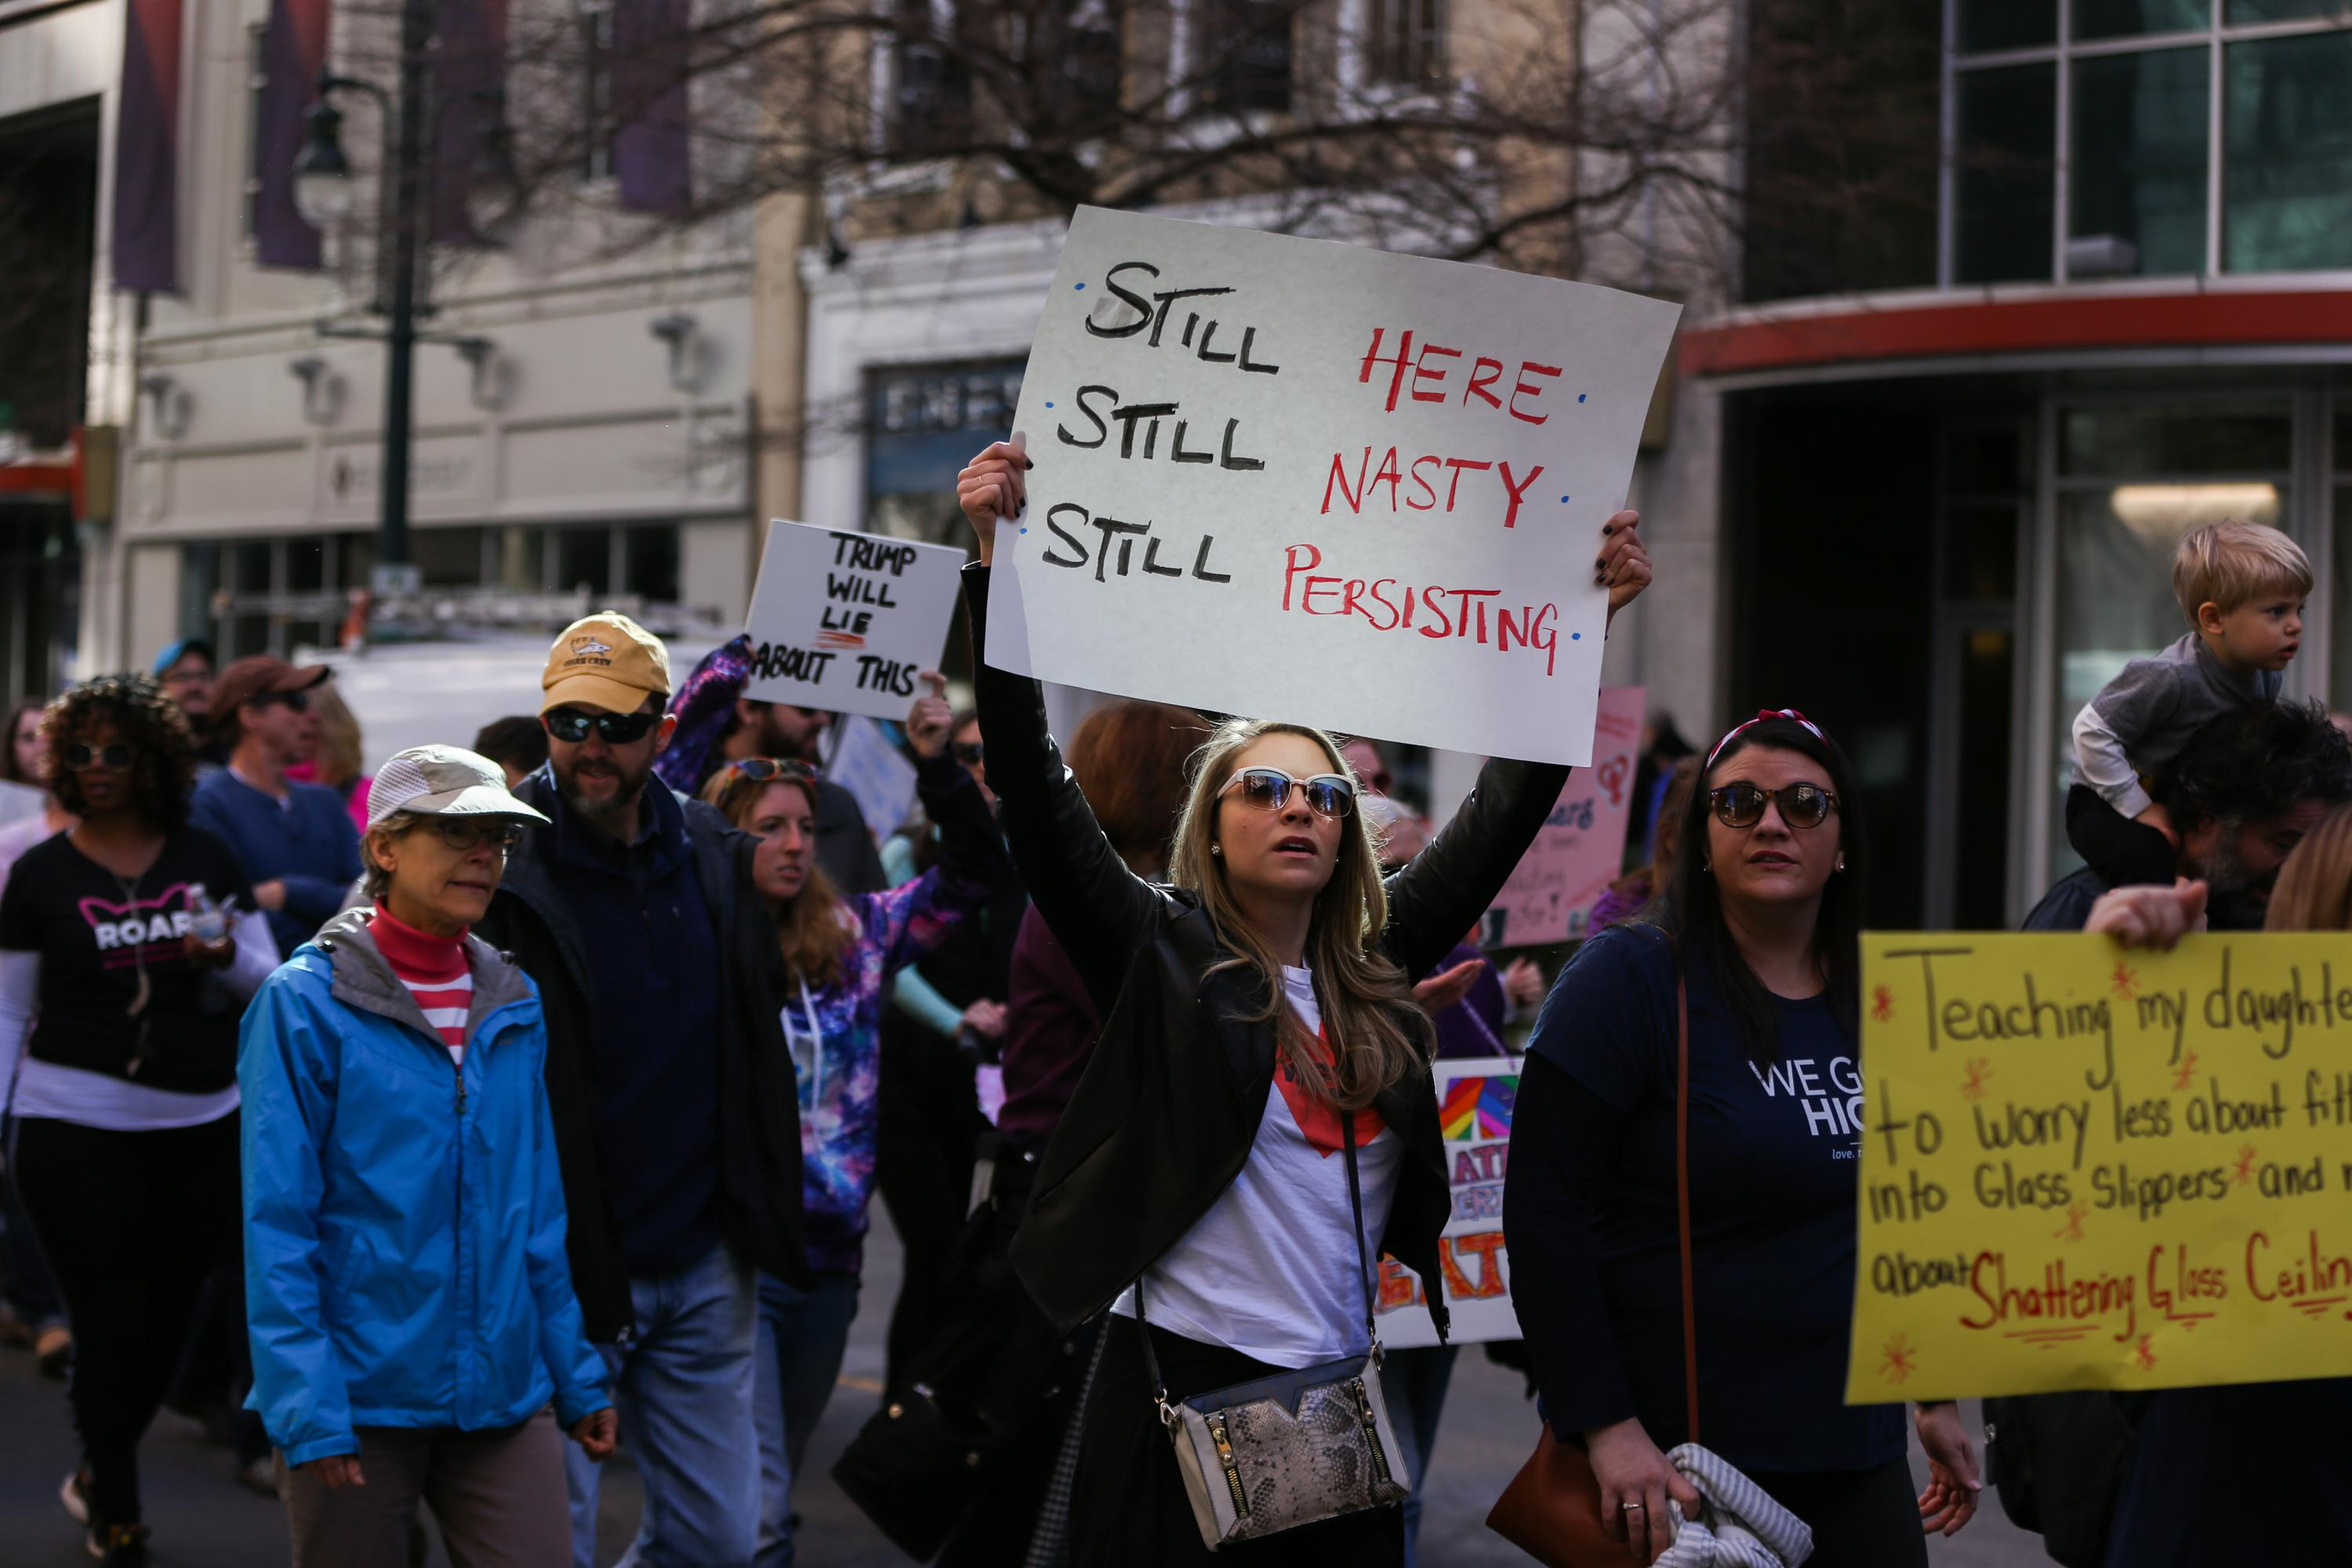 A woman holds up a sign at First Ward Park during the Remarchable Women rally in Charlotte, North Carolina on January 20, 2018, marking the one-year anniversary of the Women's March. / AFP PHOTO / Logan Cyrus        (Photo credit should read LOGAN CYRUS/AFP/Getty Images)